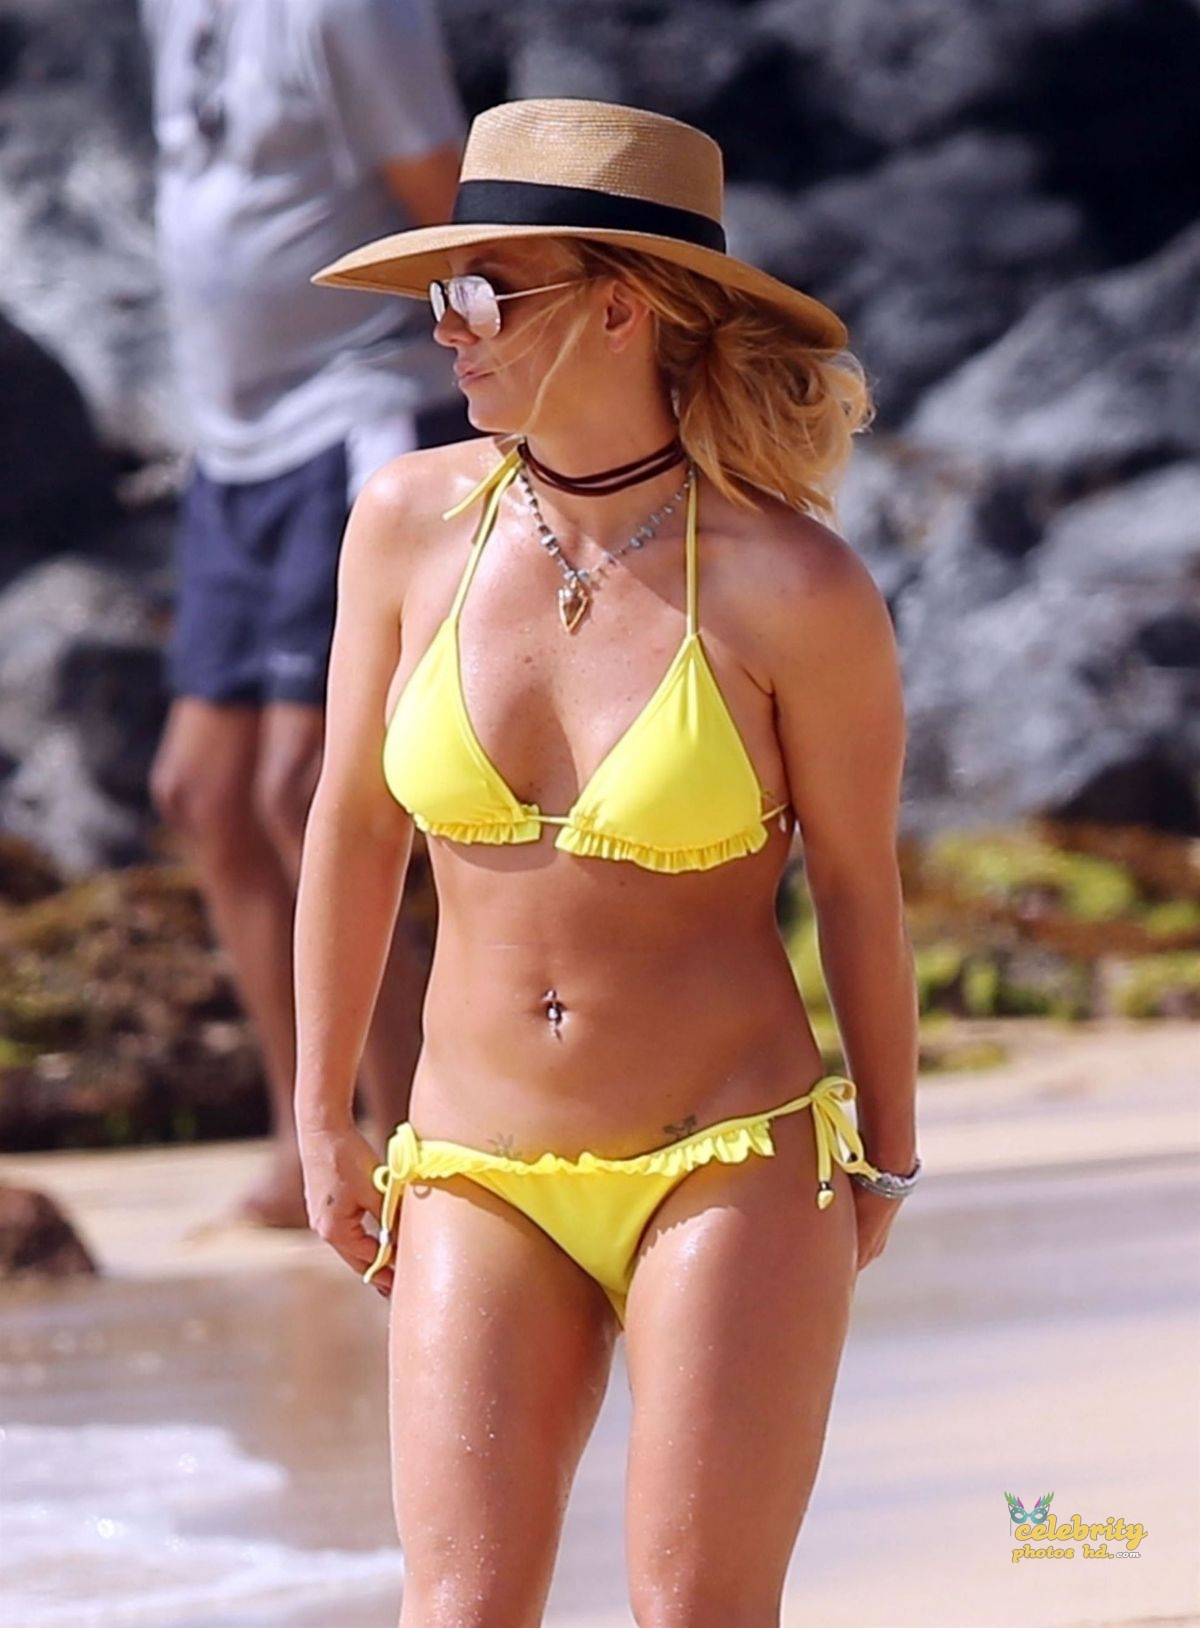 Exclusive Actress Britney Spears Hot Bikini Photo (6)